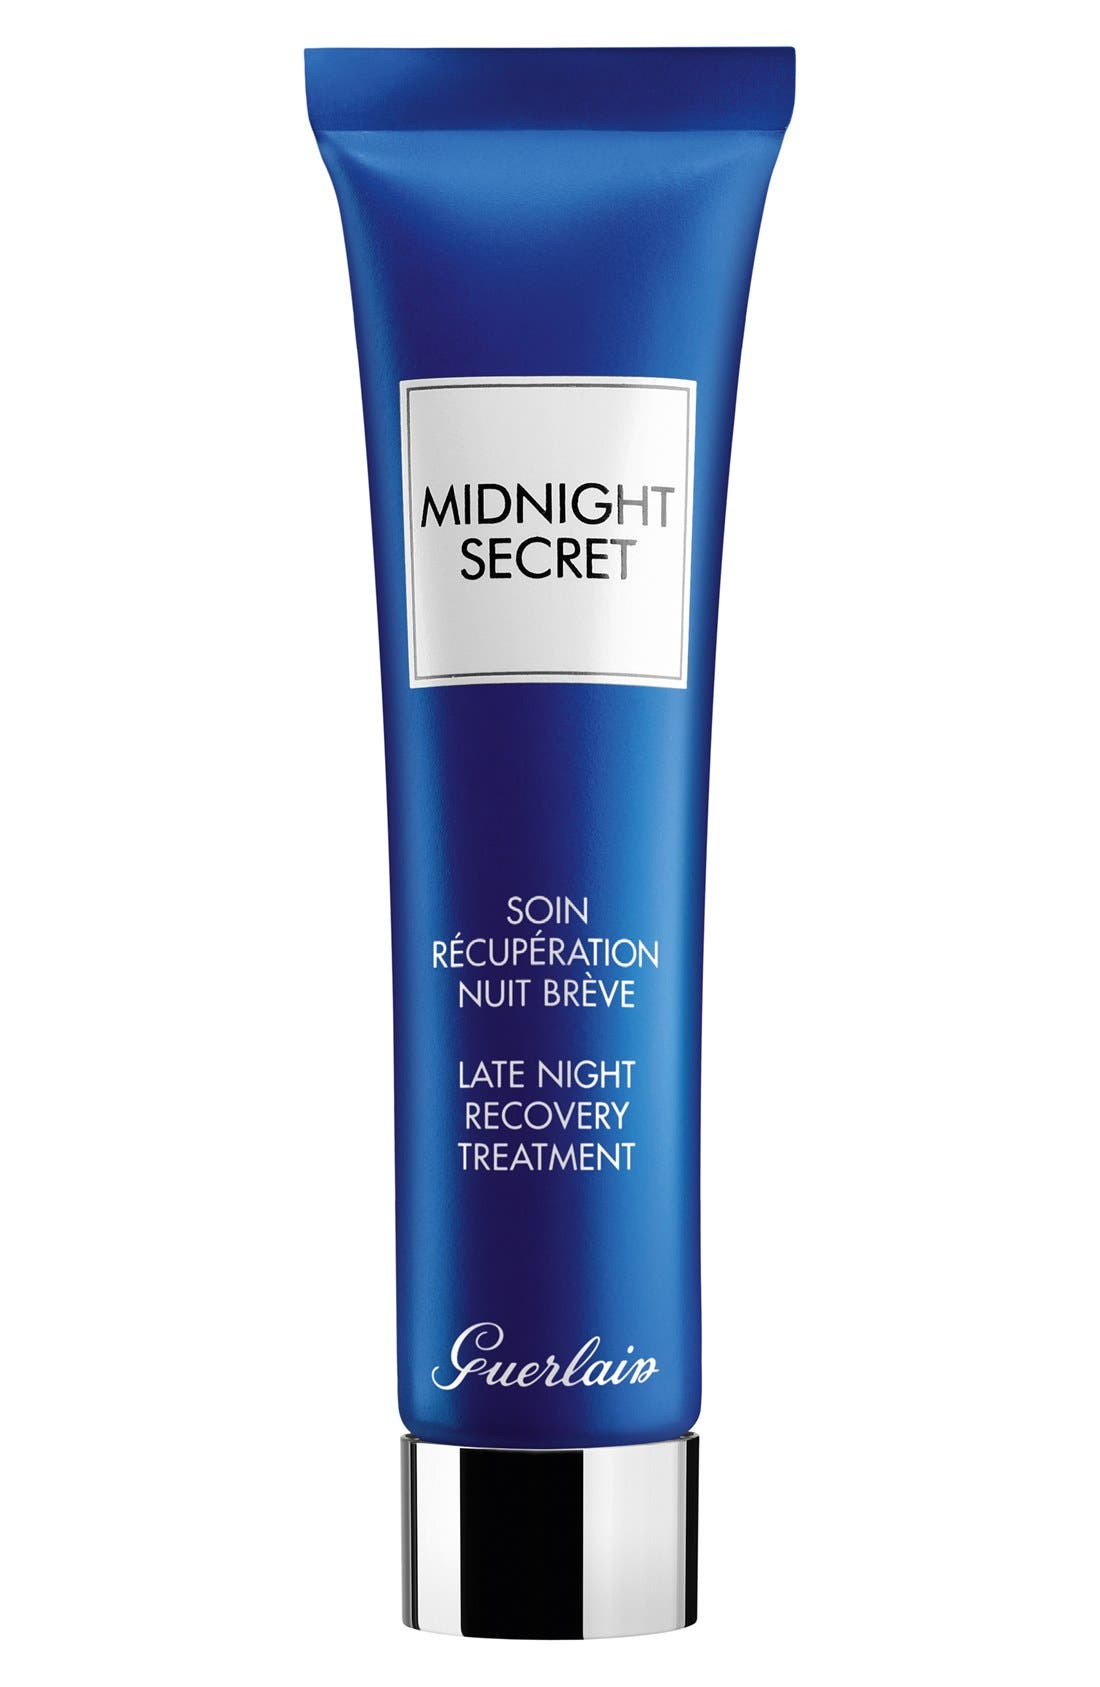 Guerlain 'Midnight Secret' Late Night Recovery Treatment